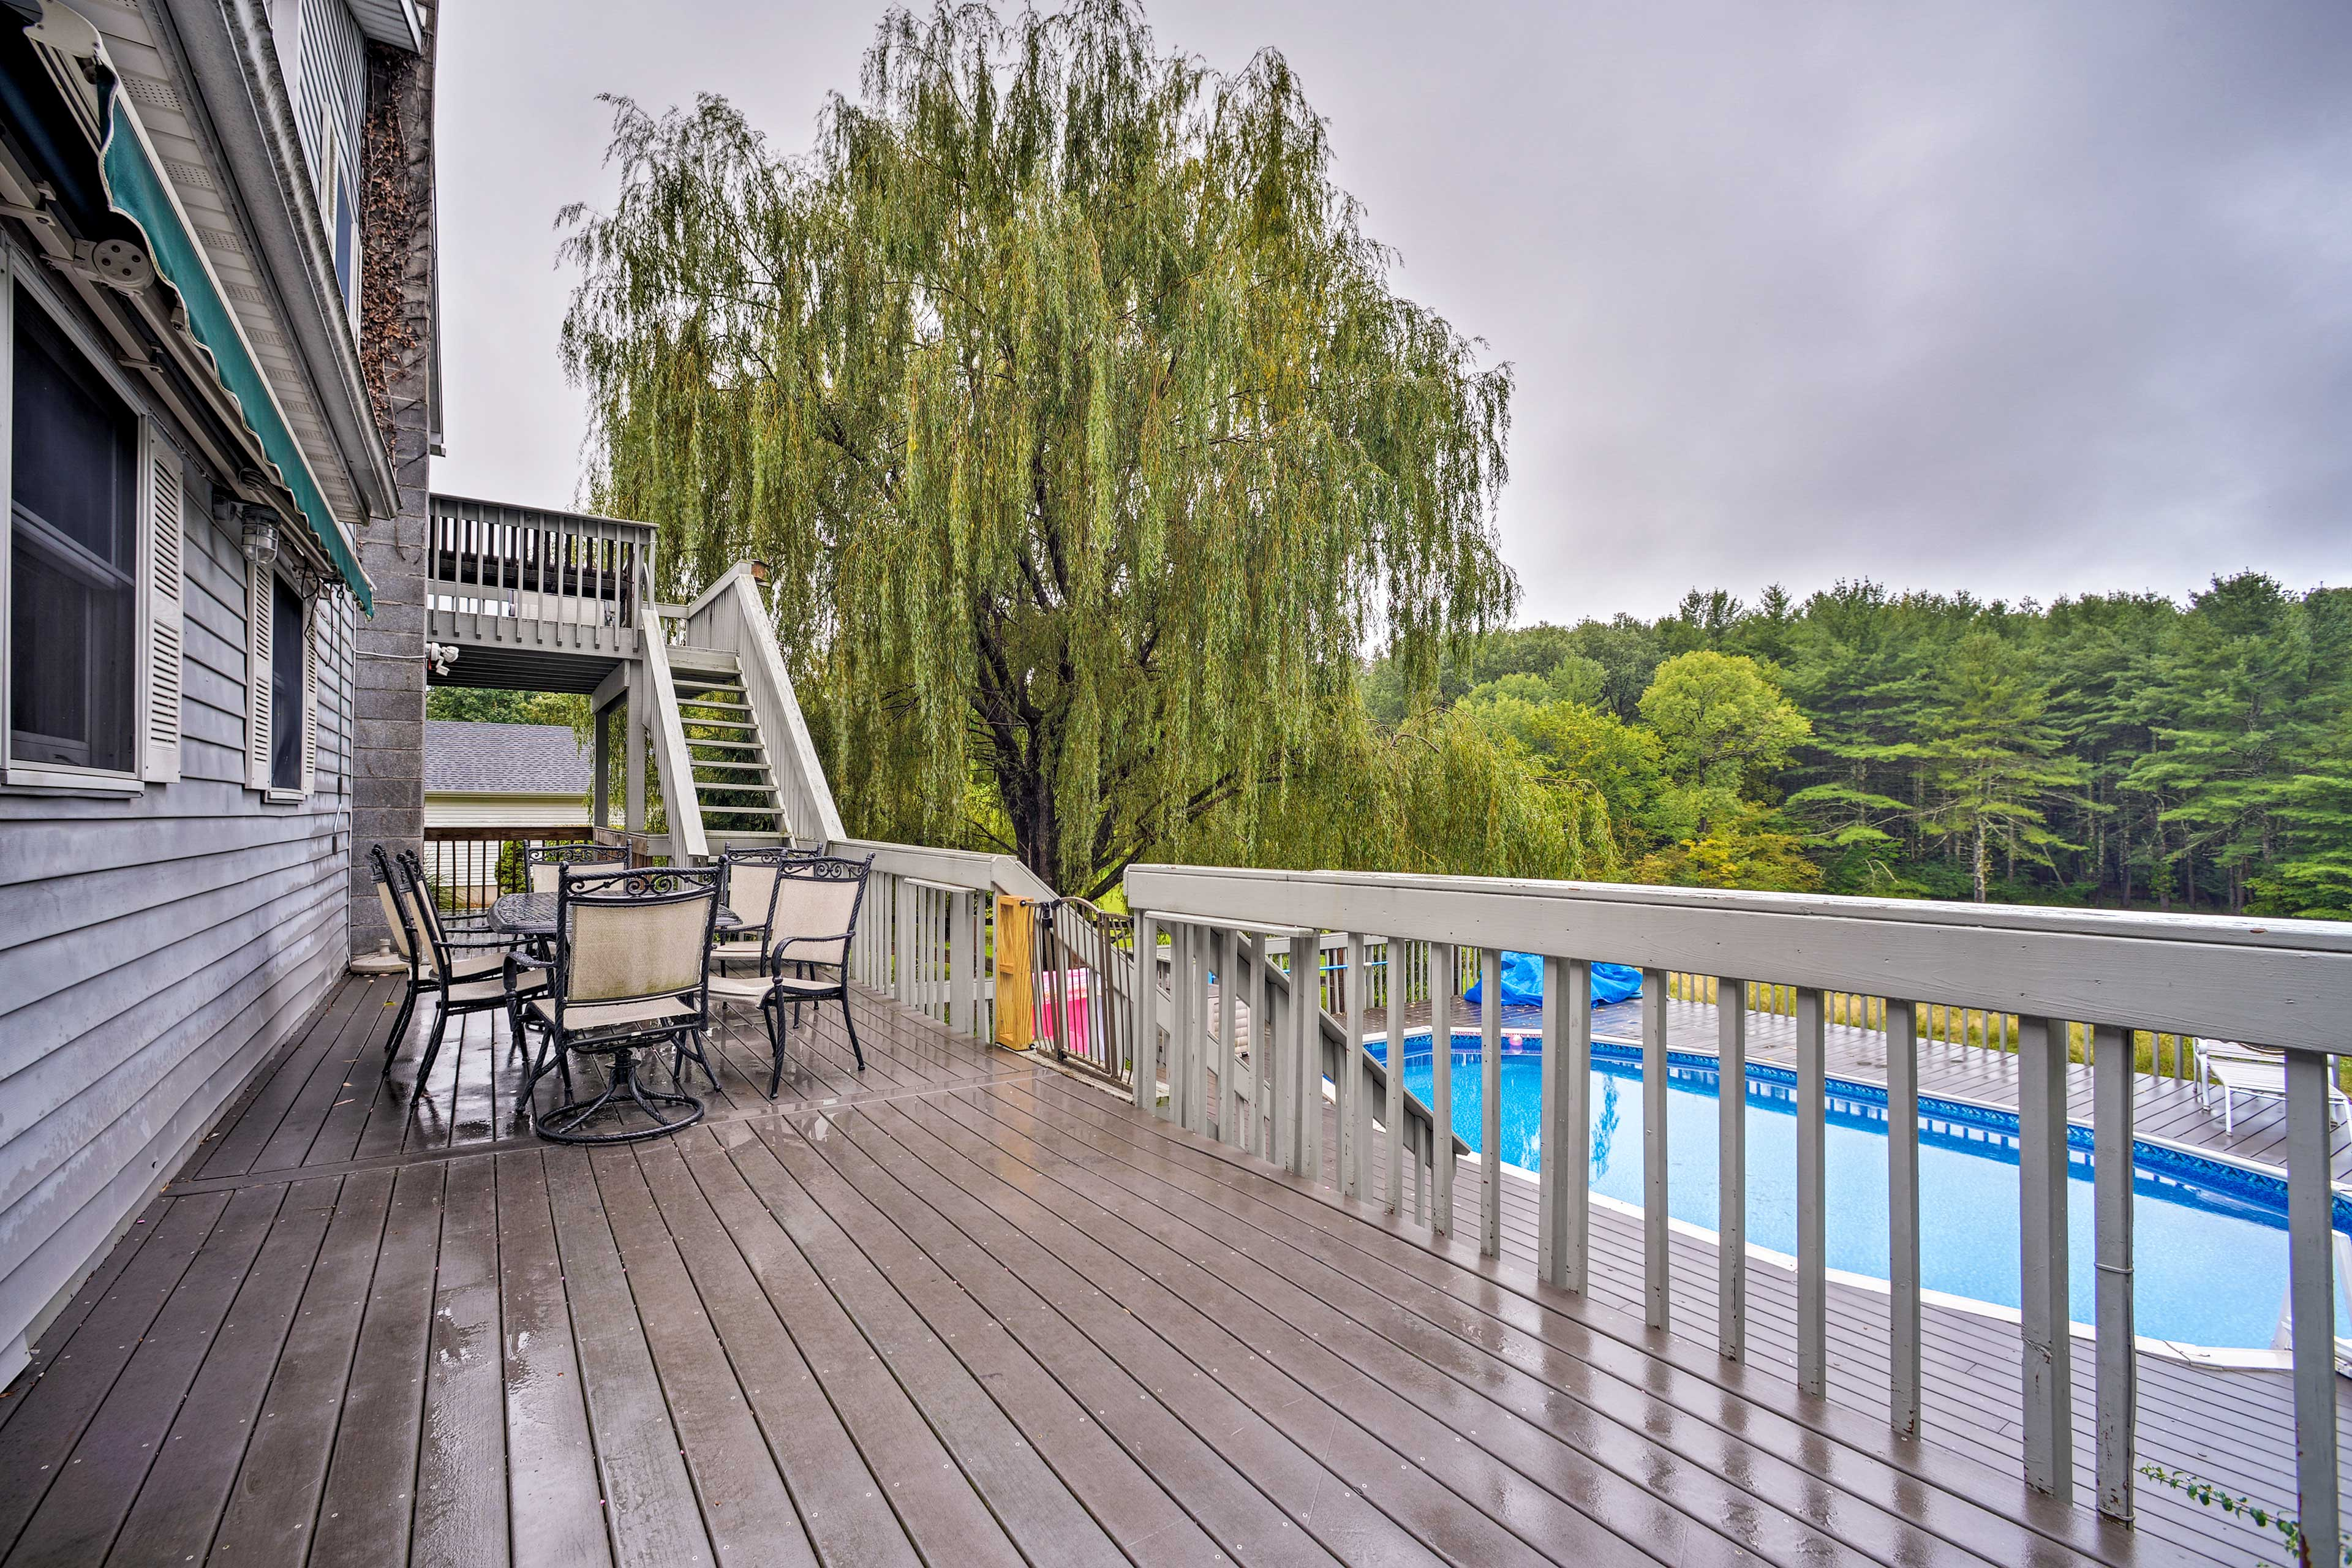 Get a little fresh air out on the deck!